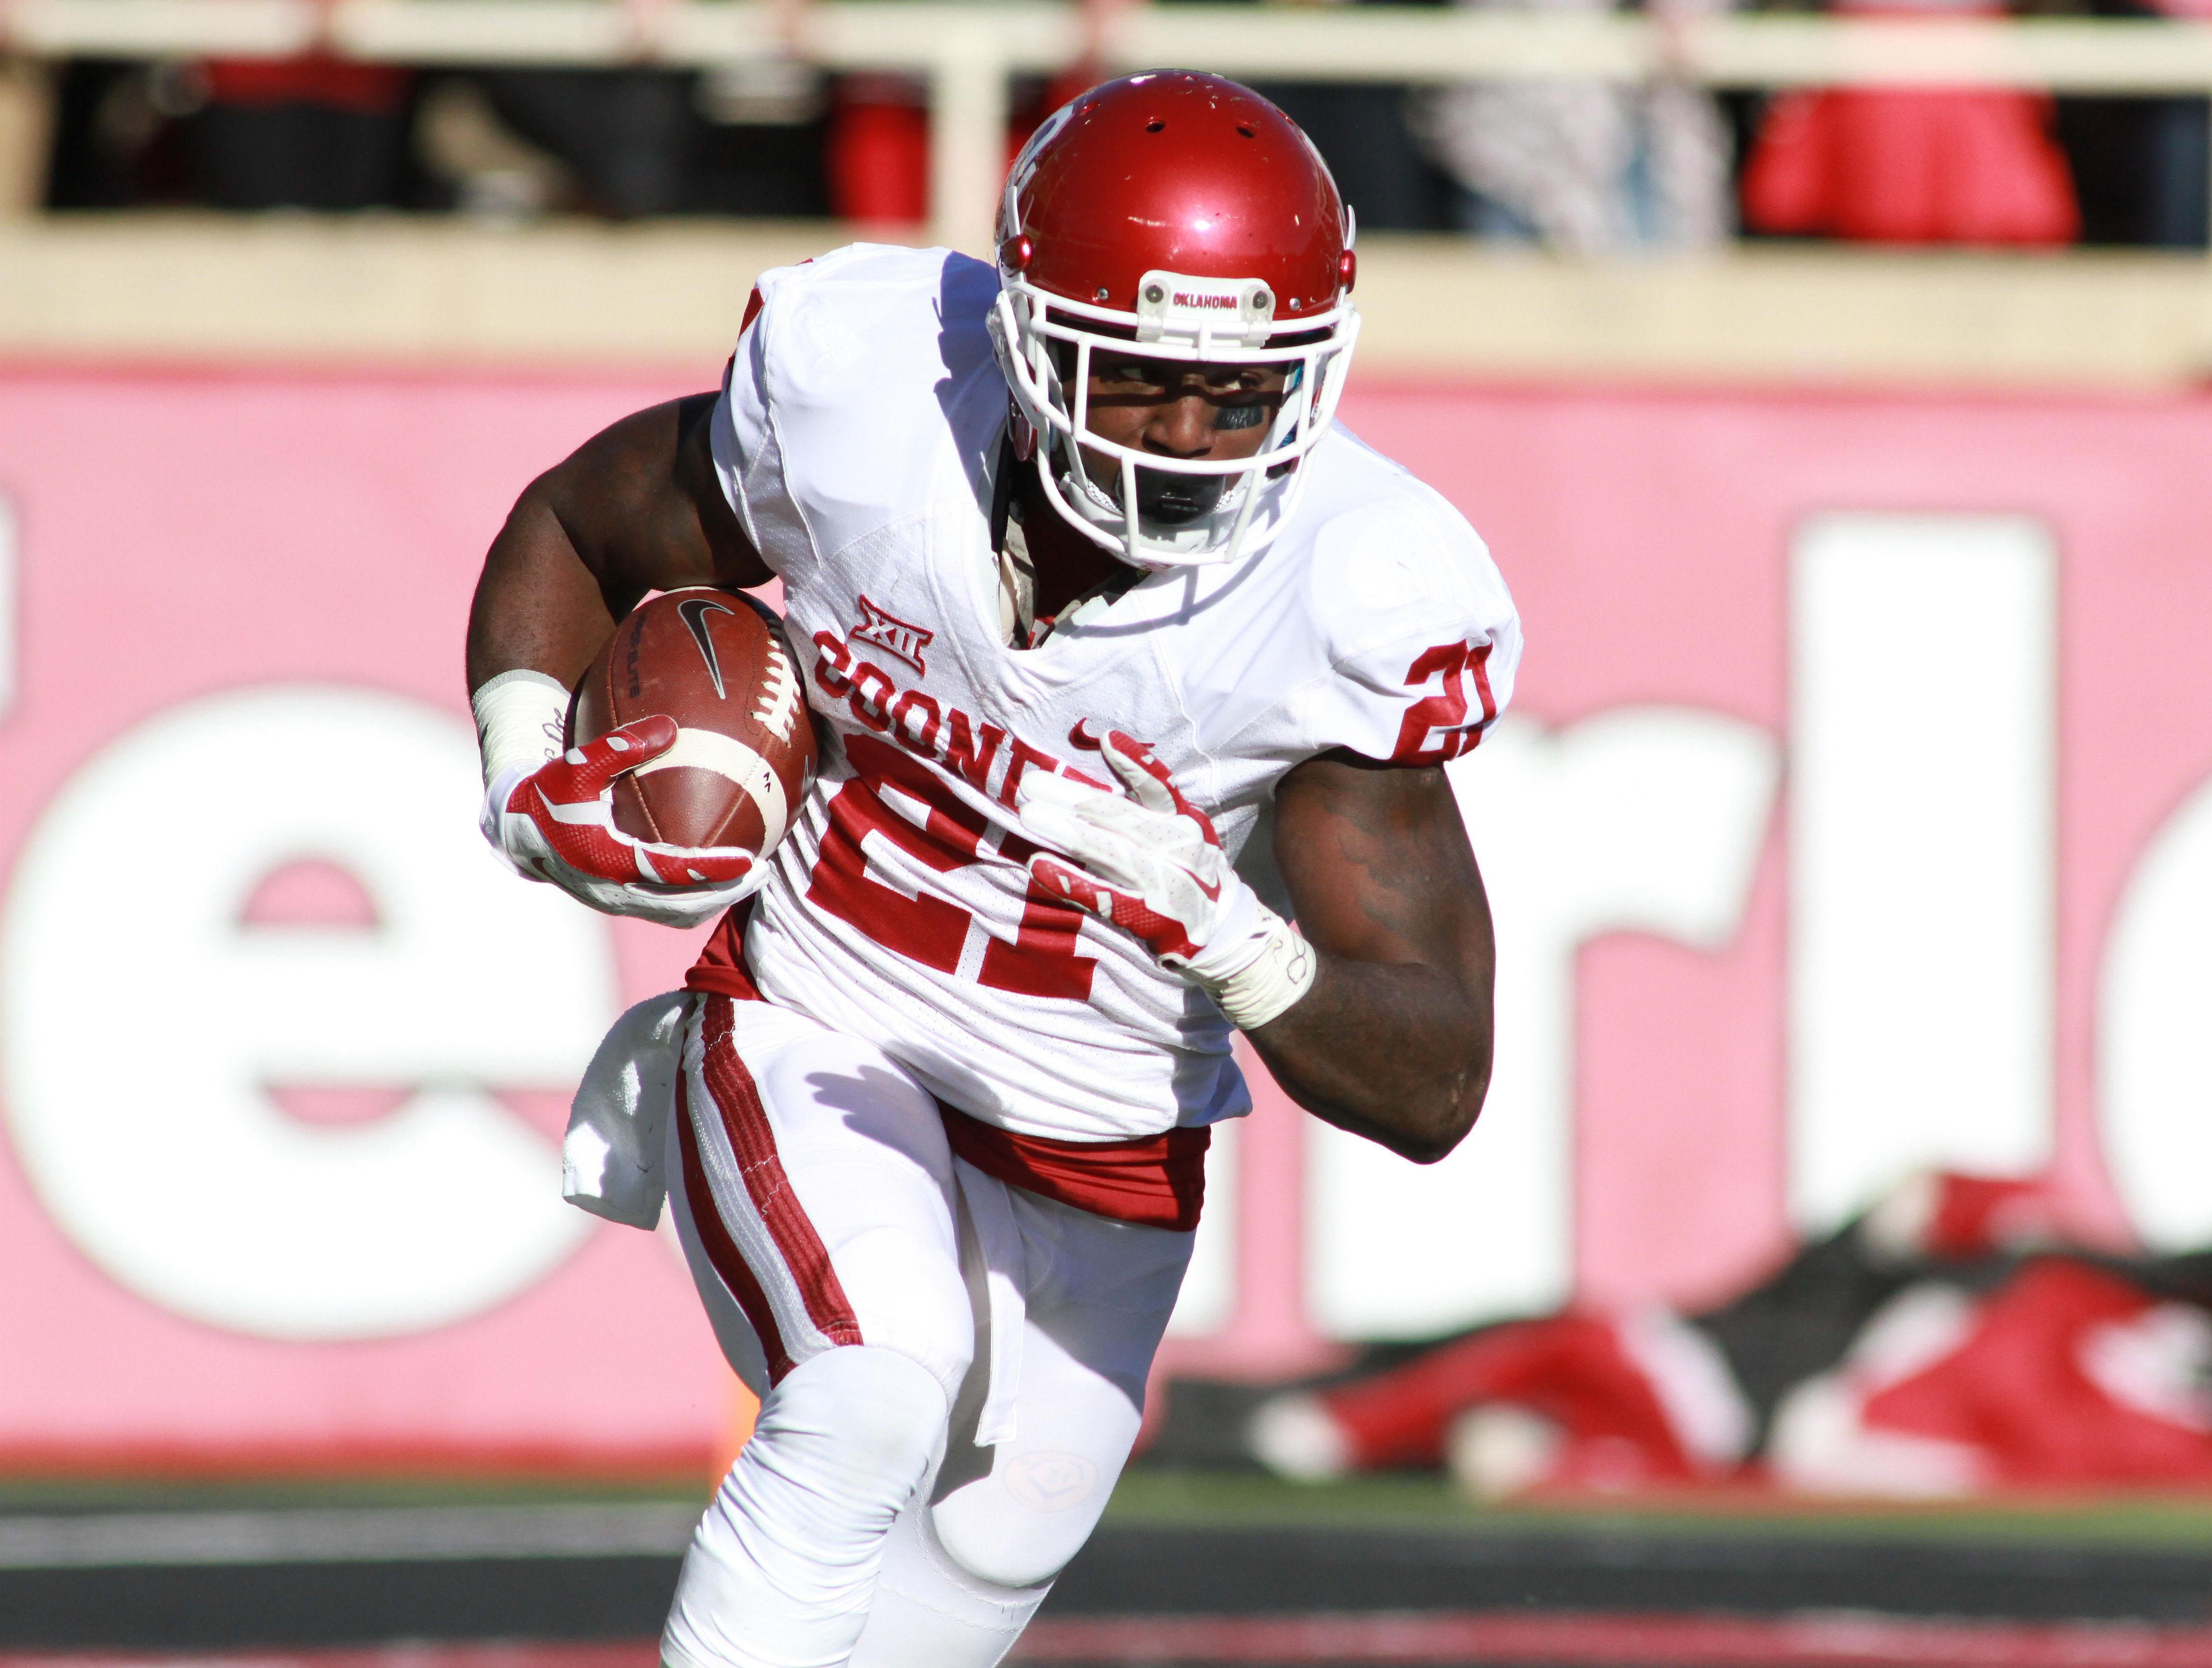 Oklahoma RB Keith Ford's dad speaks out about son's suspension